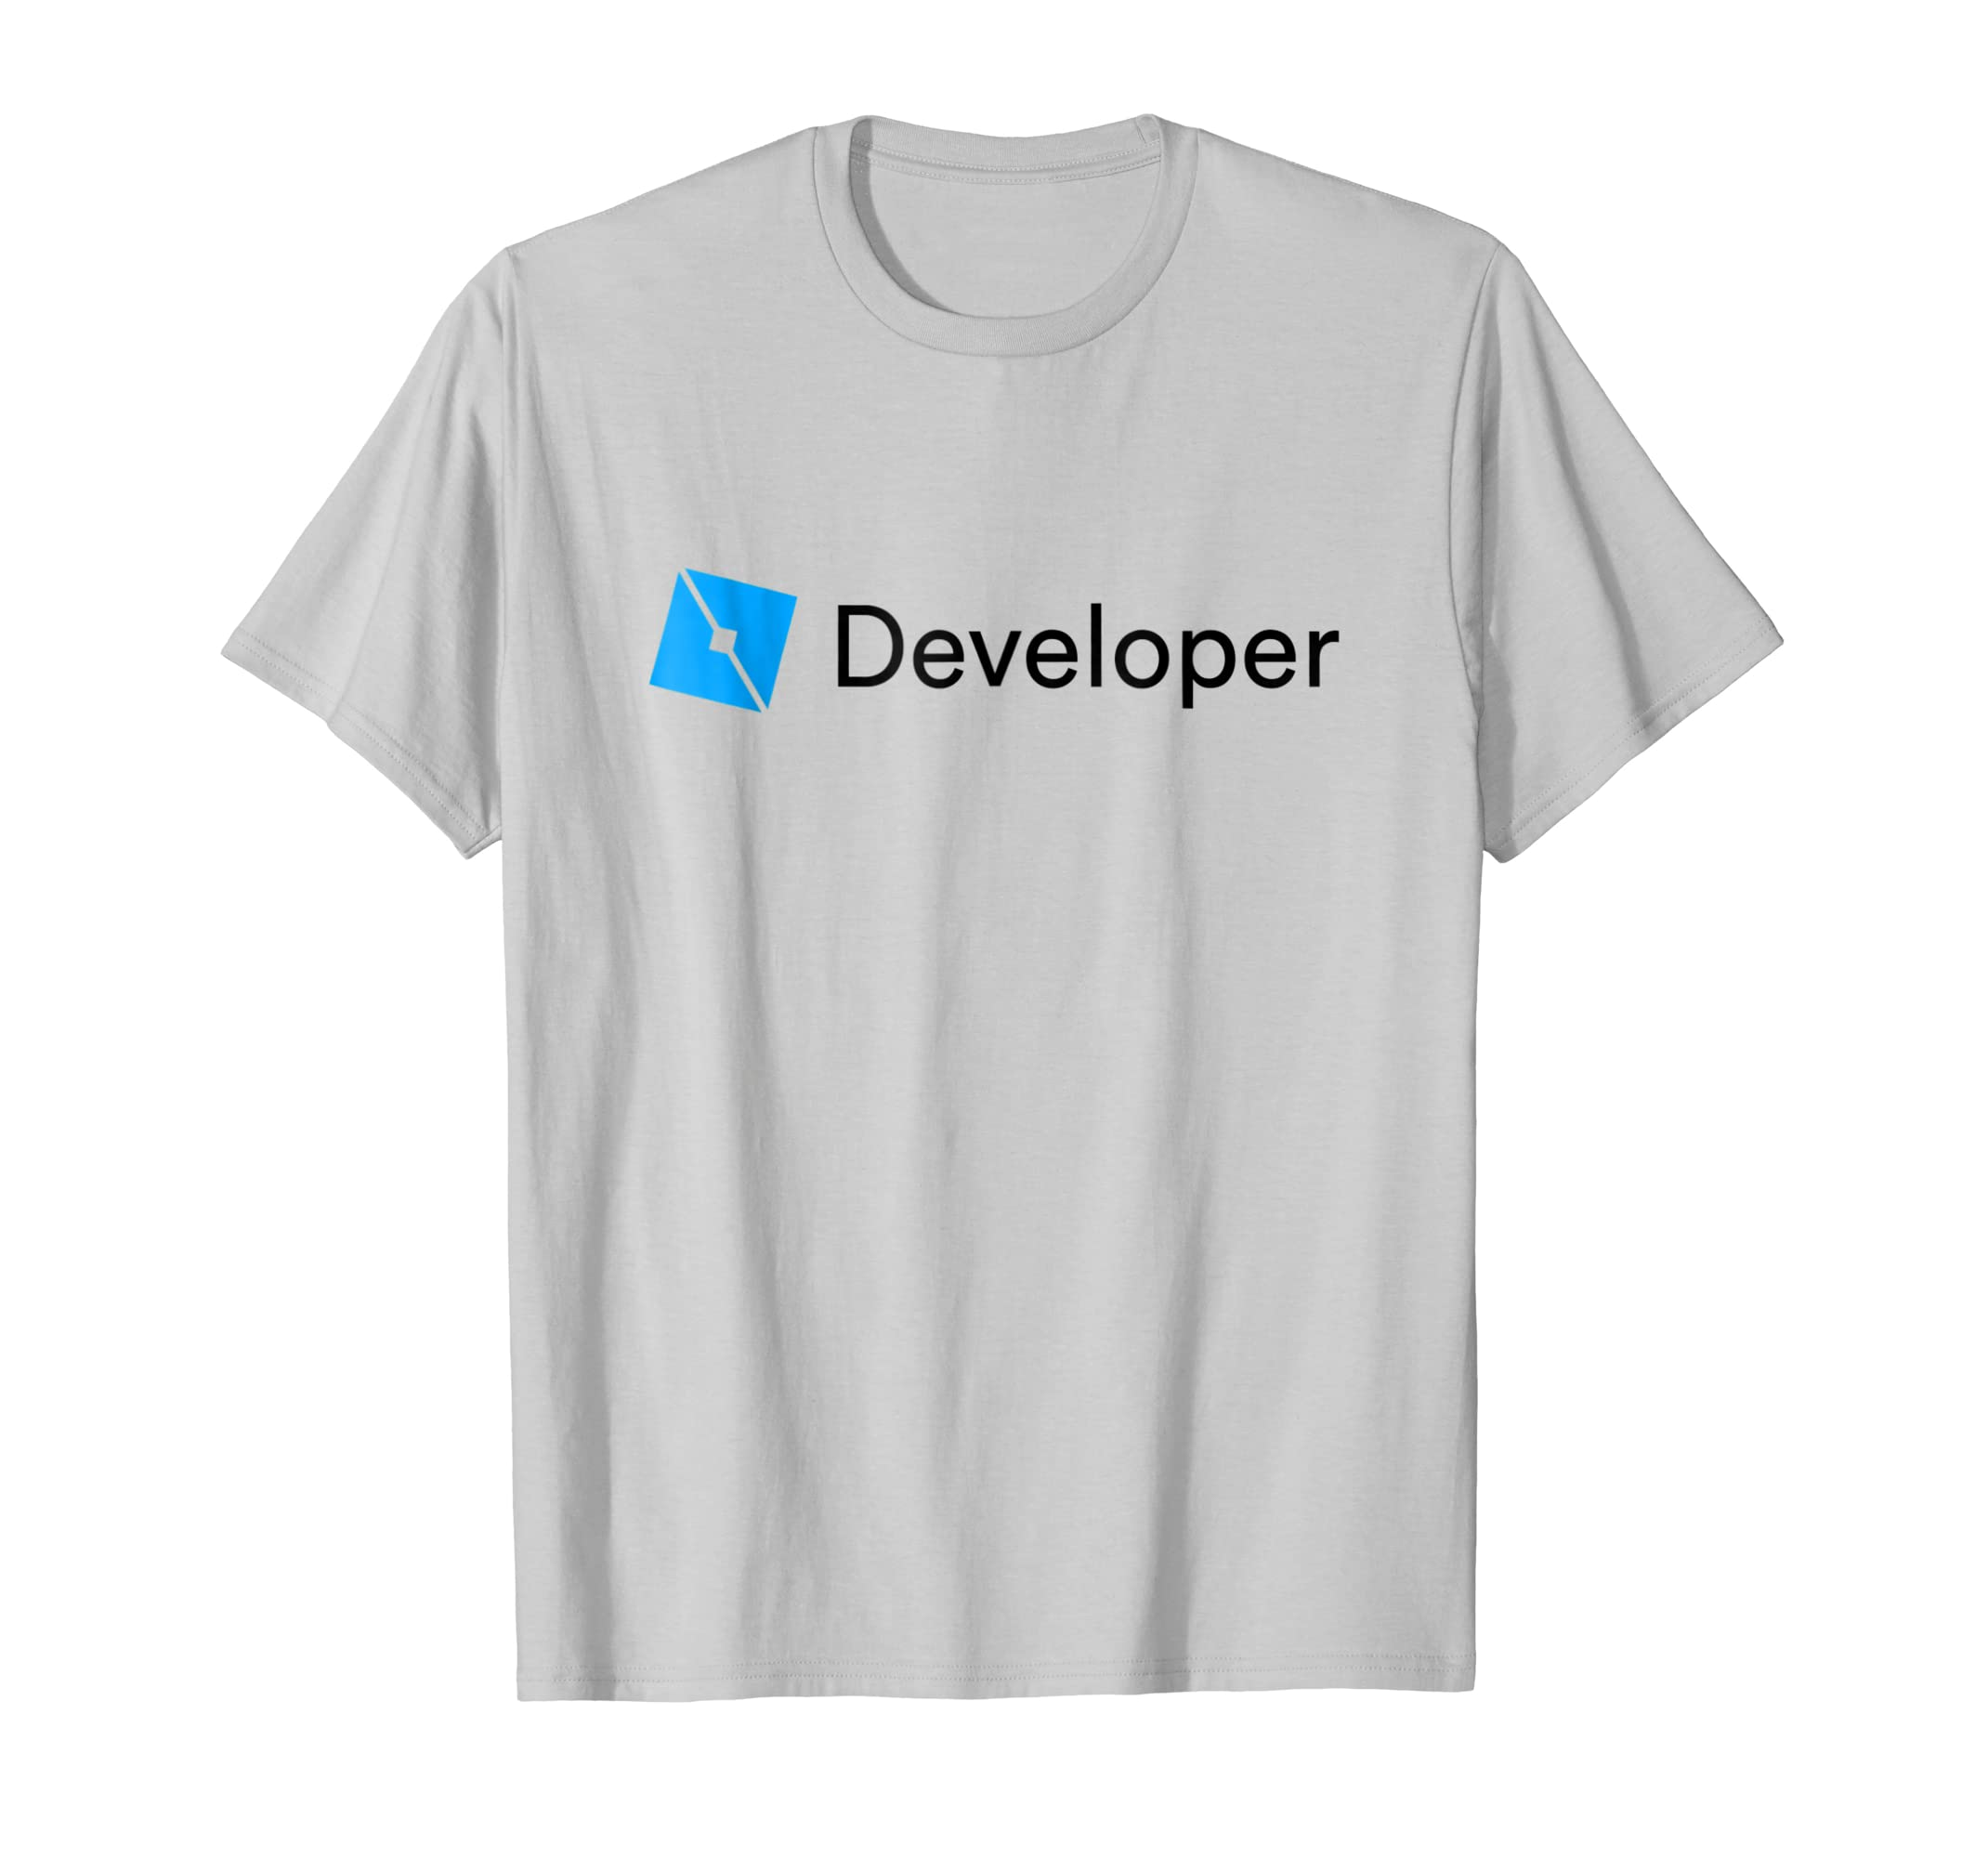 Roblox Shirt Png Free Robux Unlimited - Wholefed org